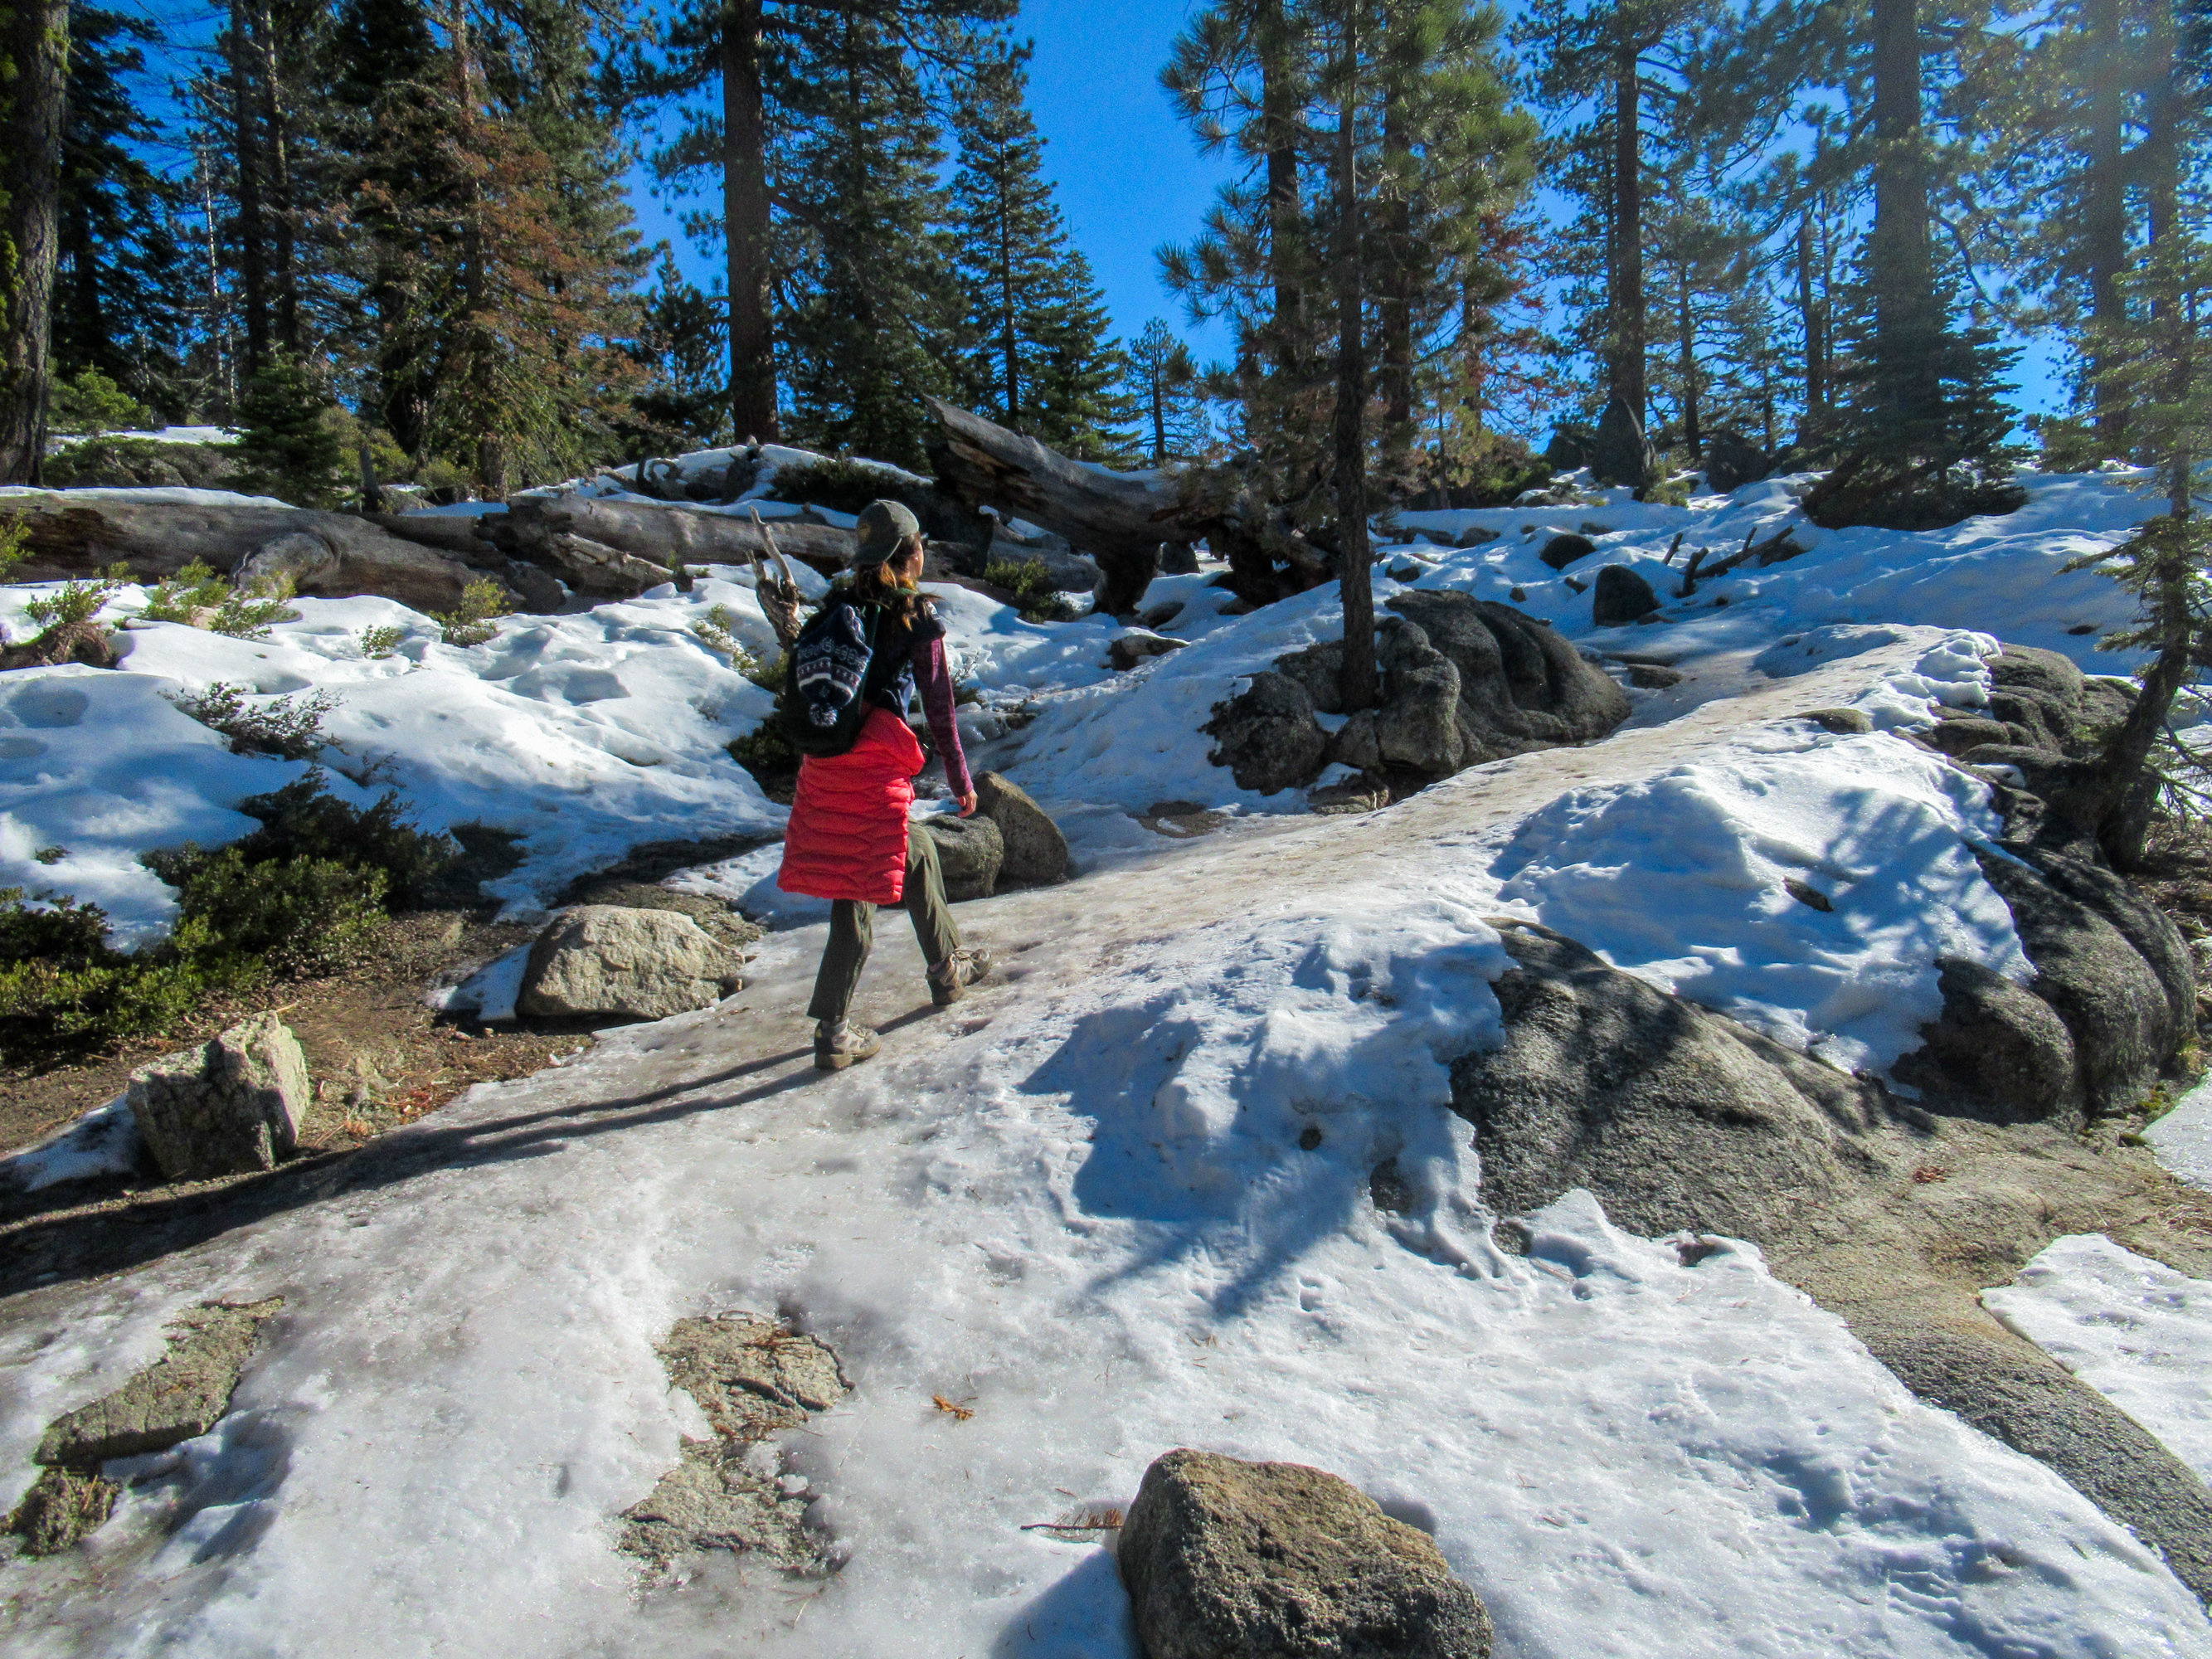 Snow covers the trail en route to Yosemite Falls.